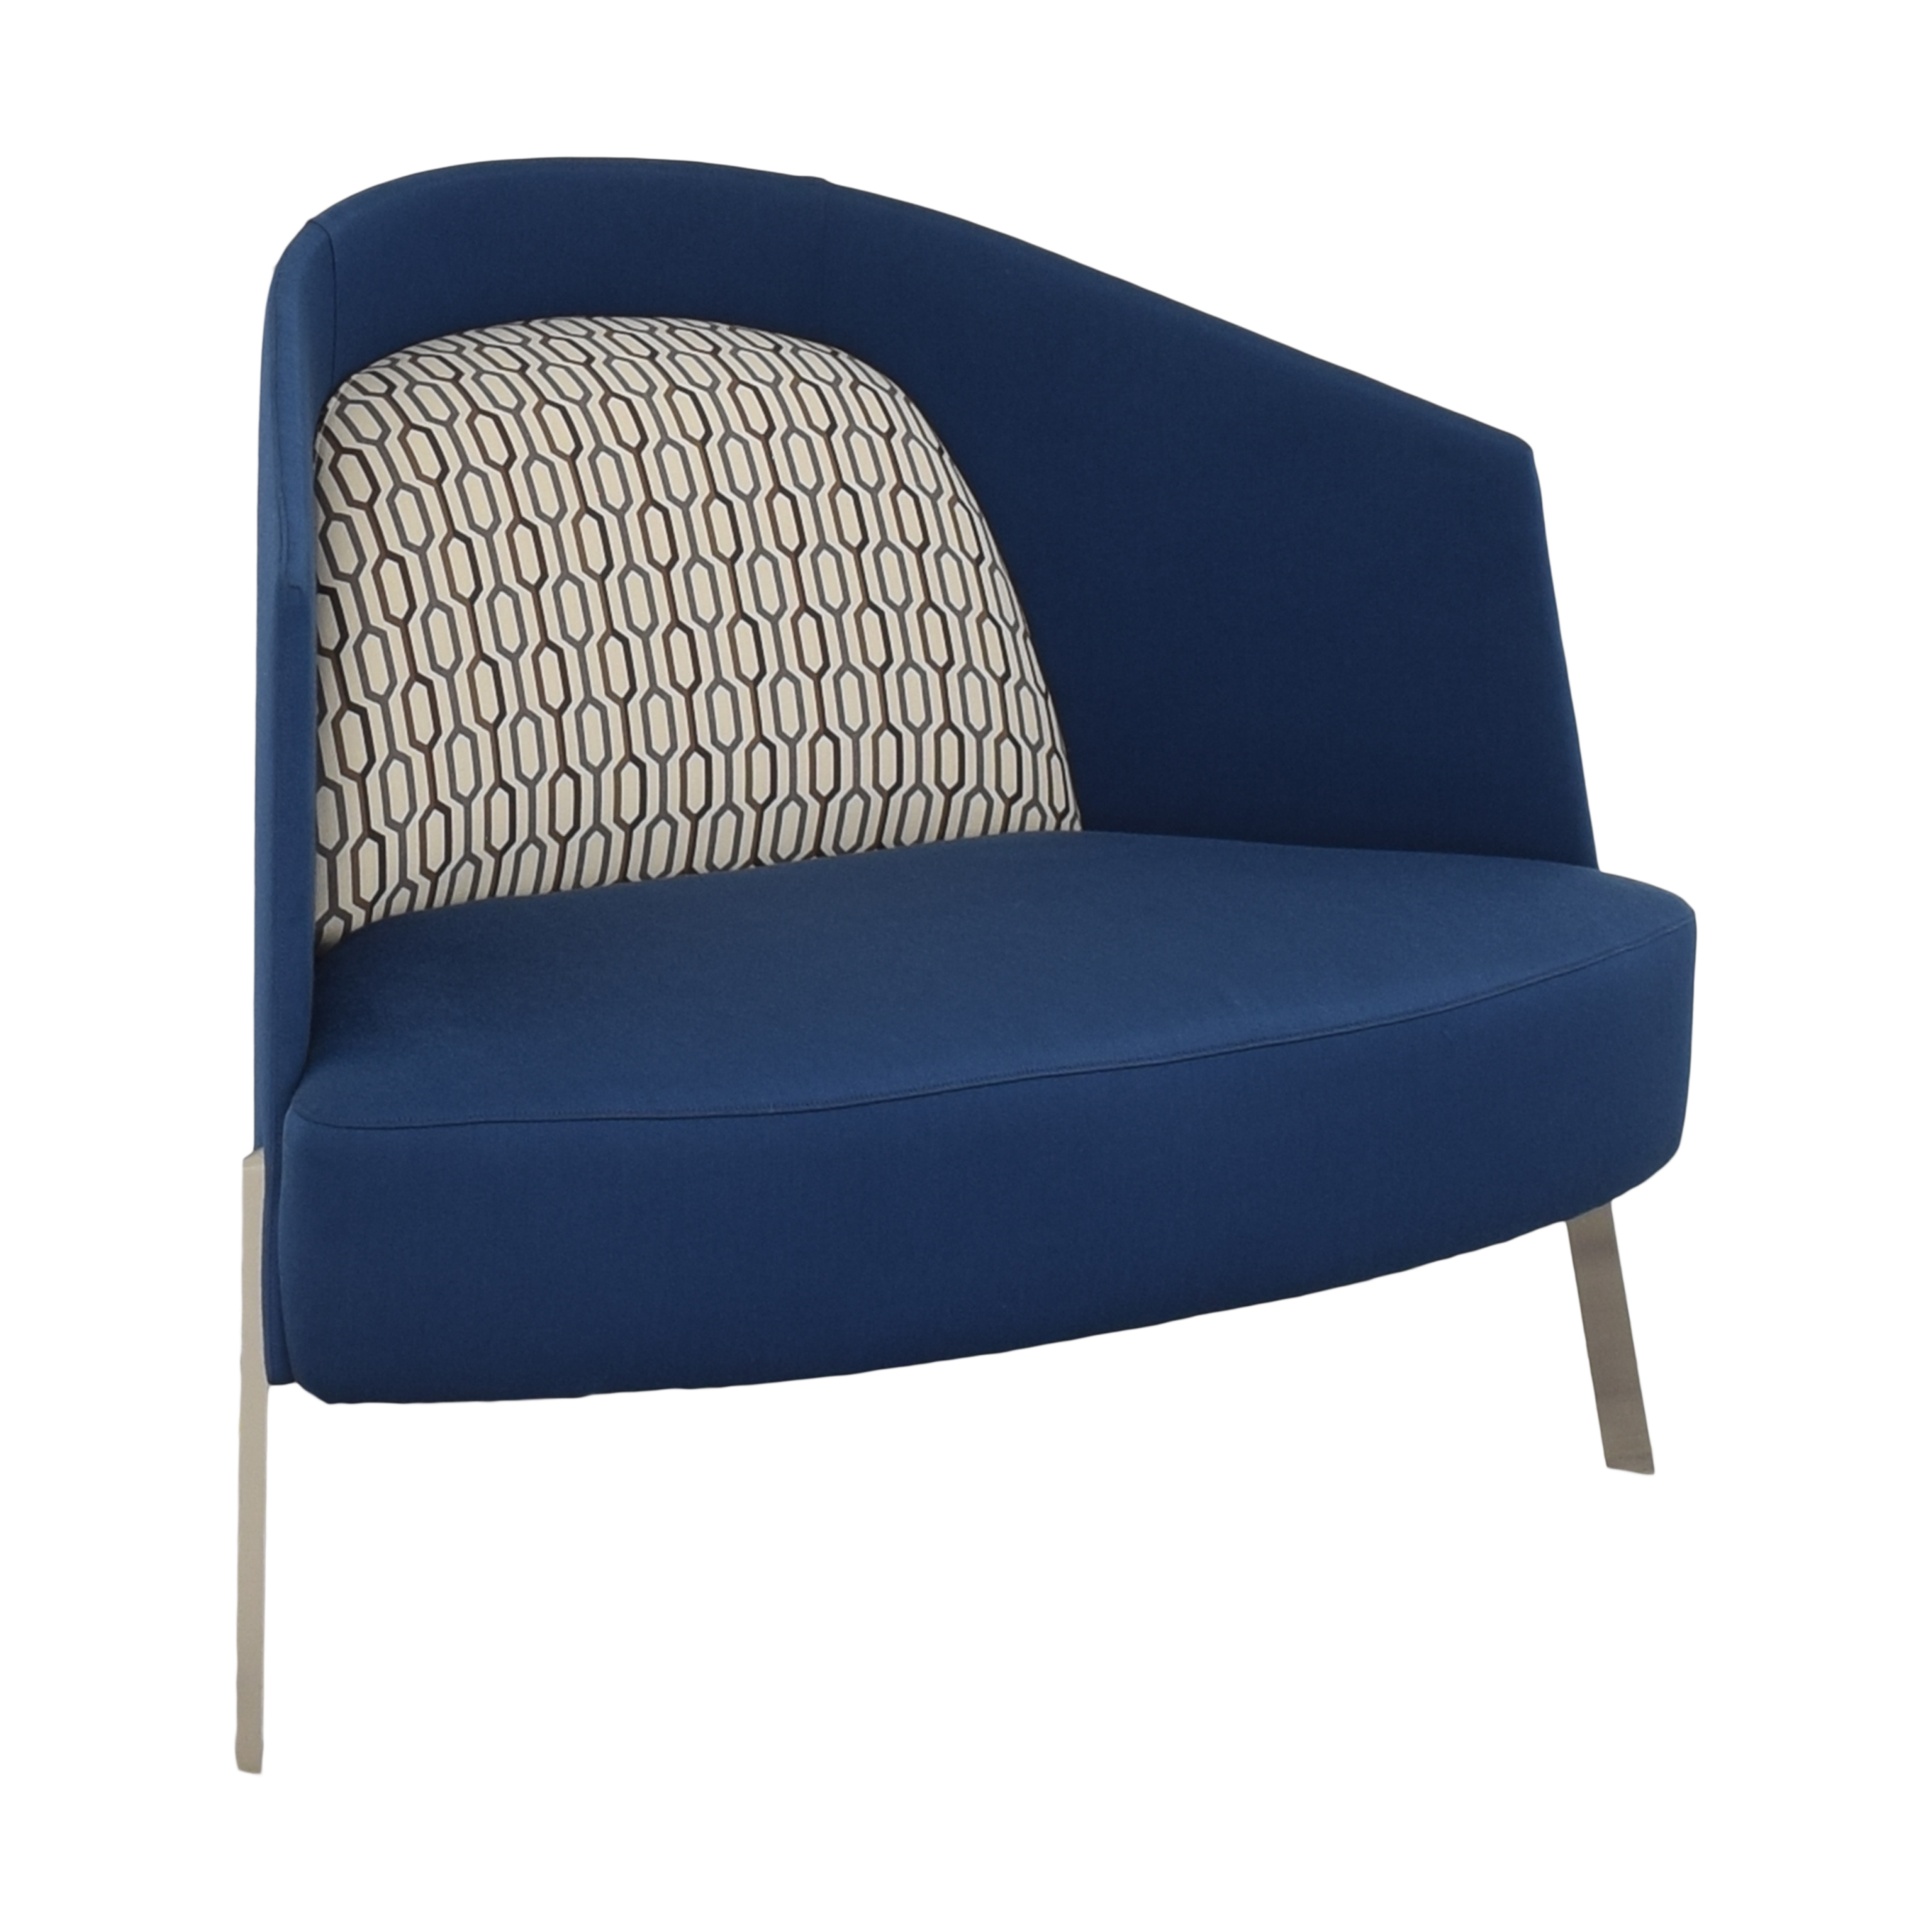 TK Collections Studio TK Fractals Lounge Chair discount